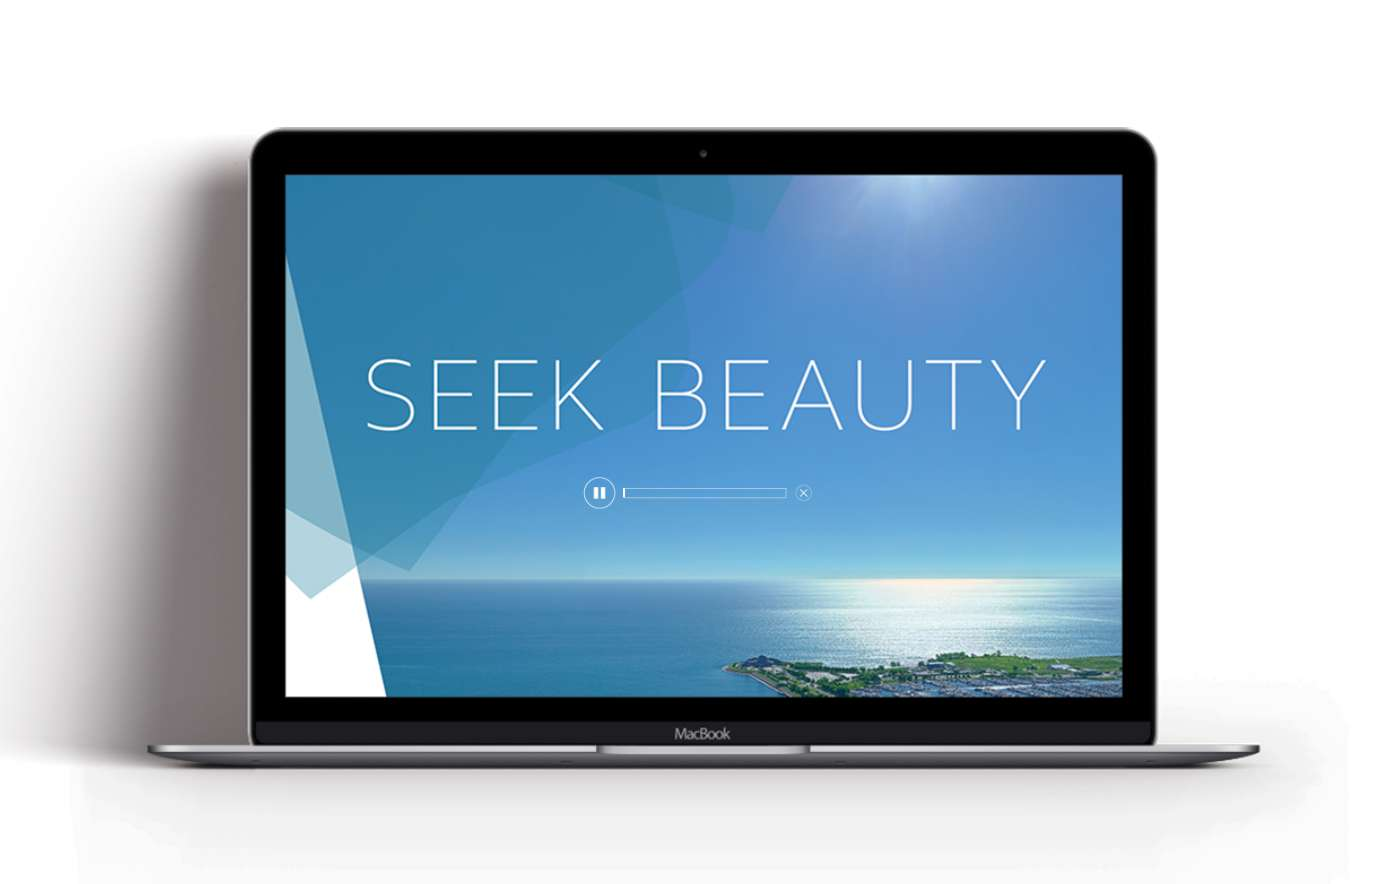 Website designed for 1000M, with tagline Seek Beauty and playable audio